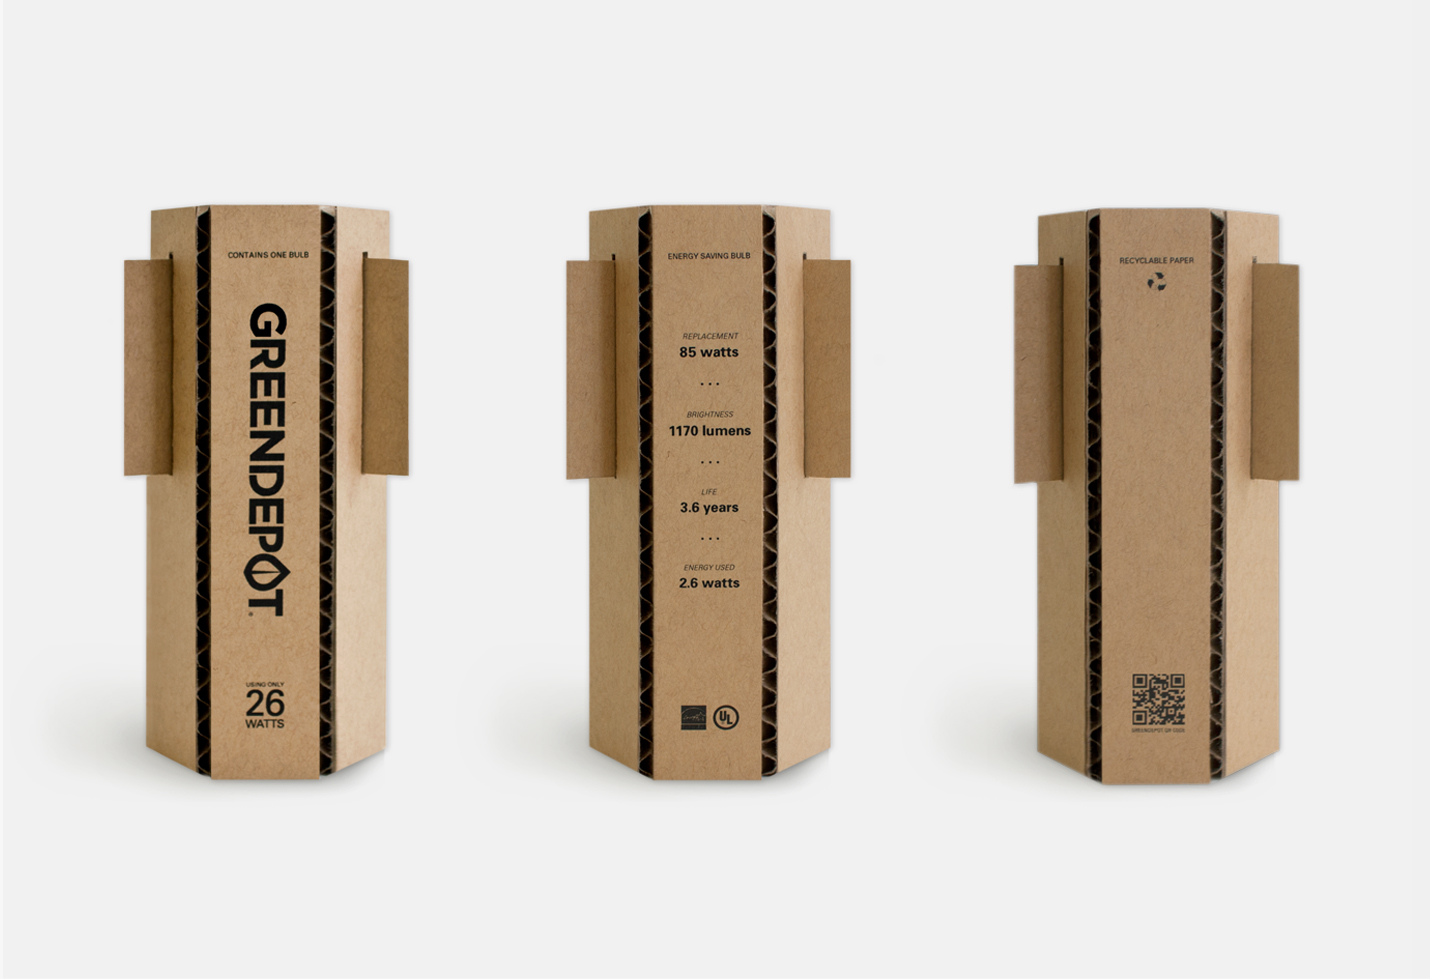 The green package design essay